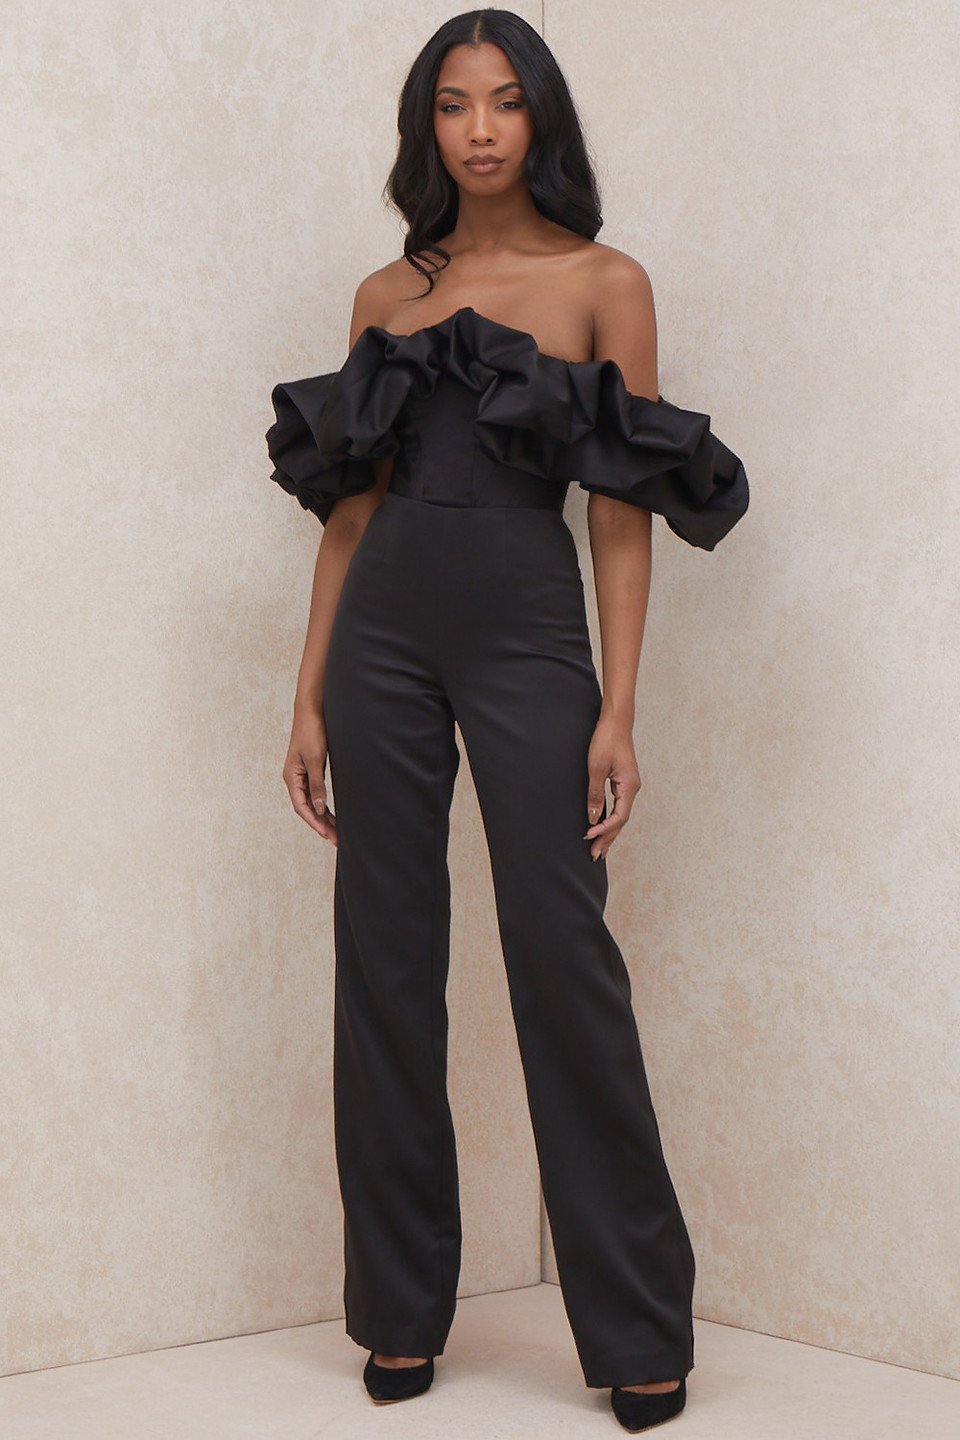 Georgia Black Satin Strapless Ruffle Jumpsuit